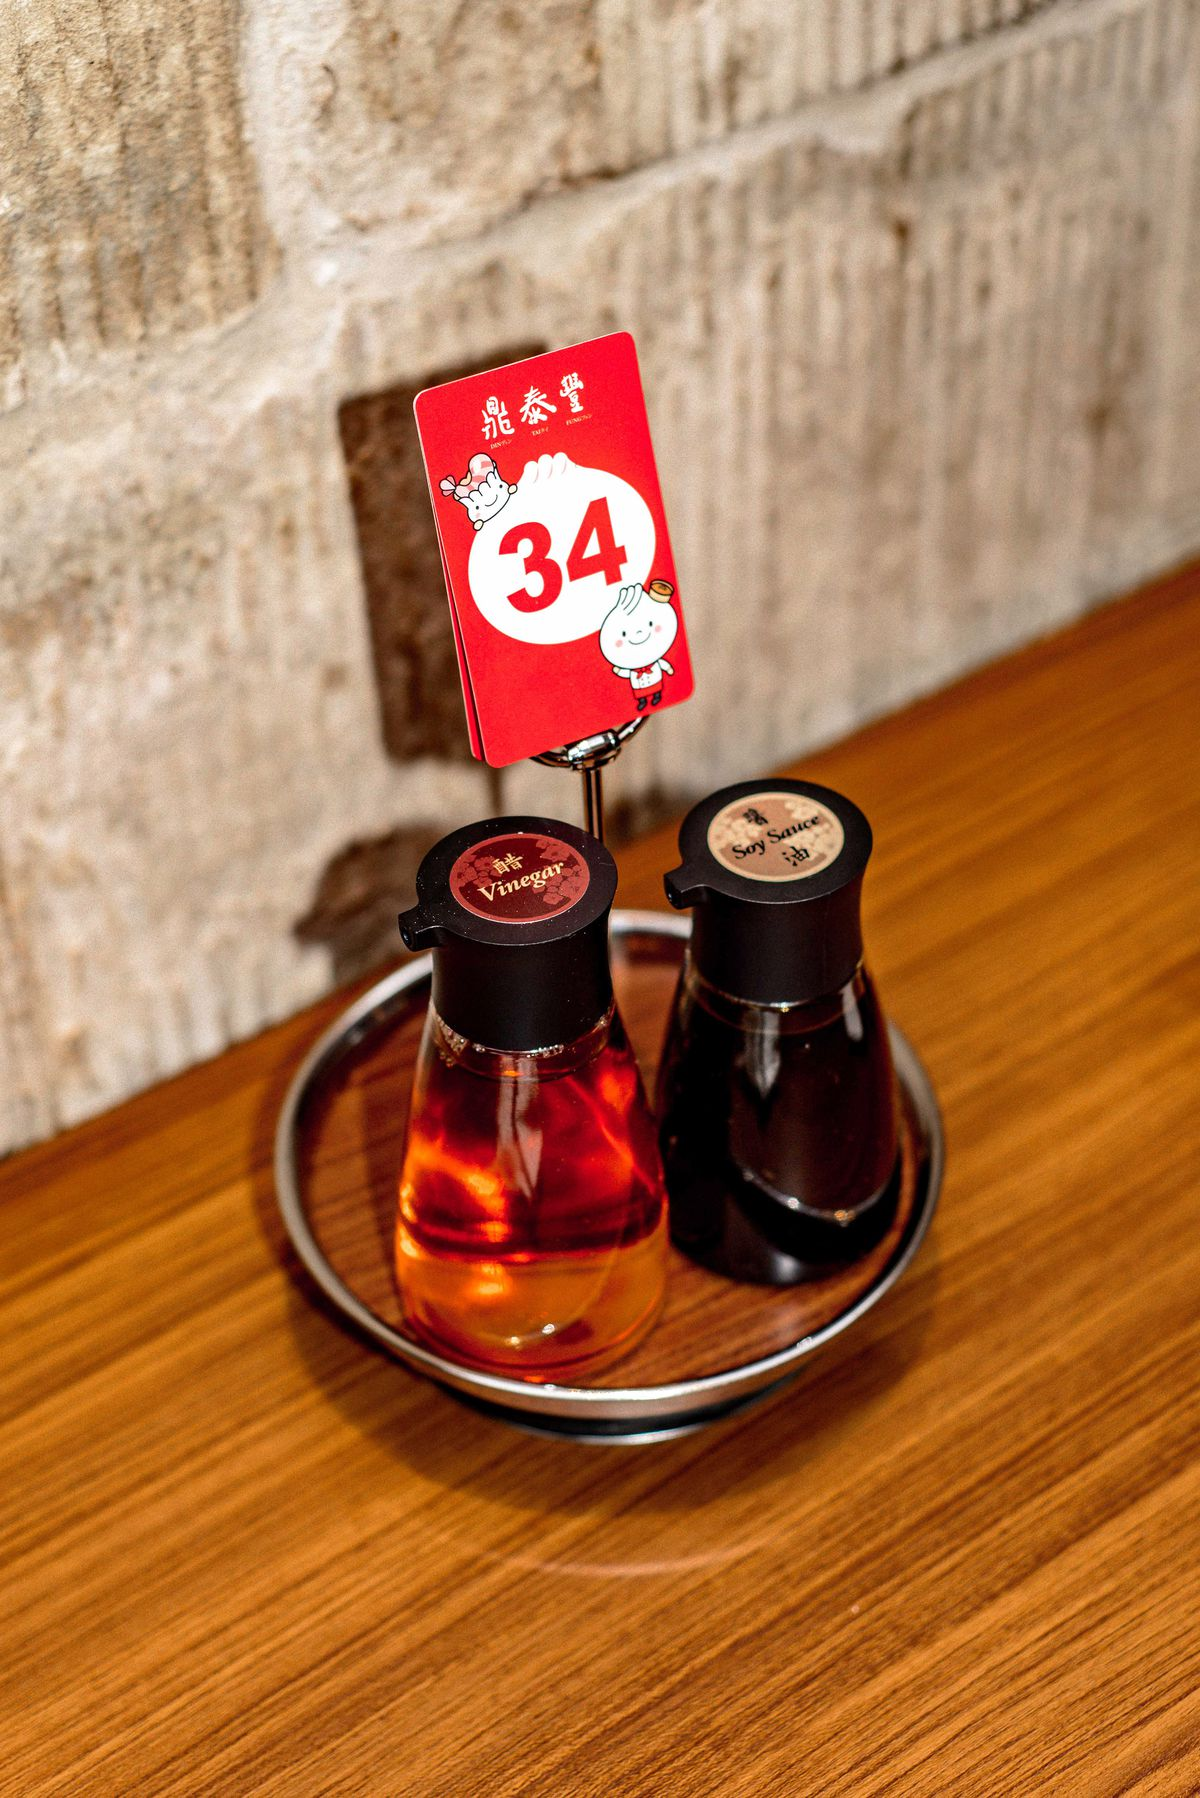 Soy sauce and vinegar for xiaolongbao dumplings at Din Tai Fung's new London restaurant in Covent Garden